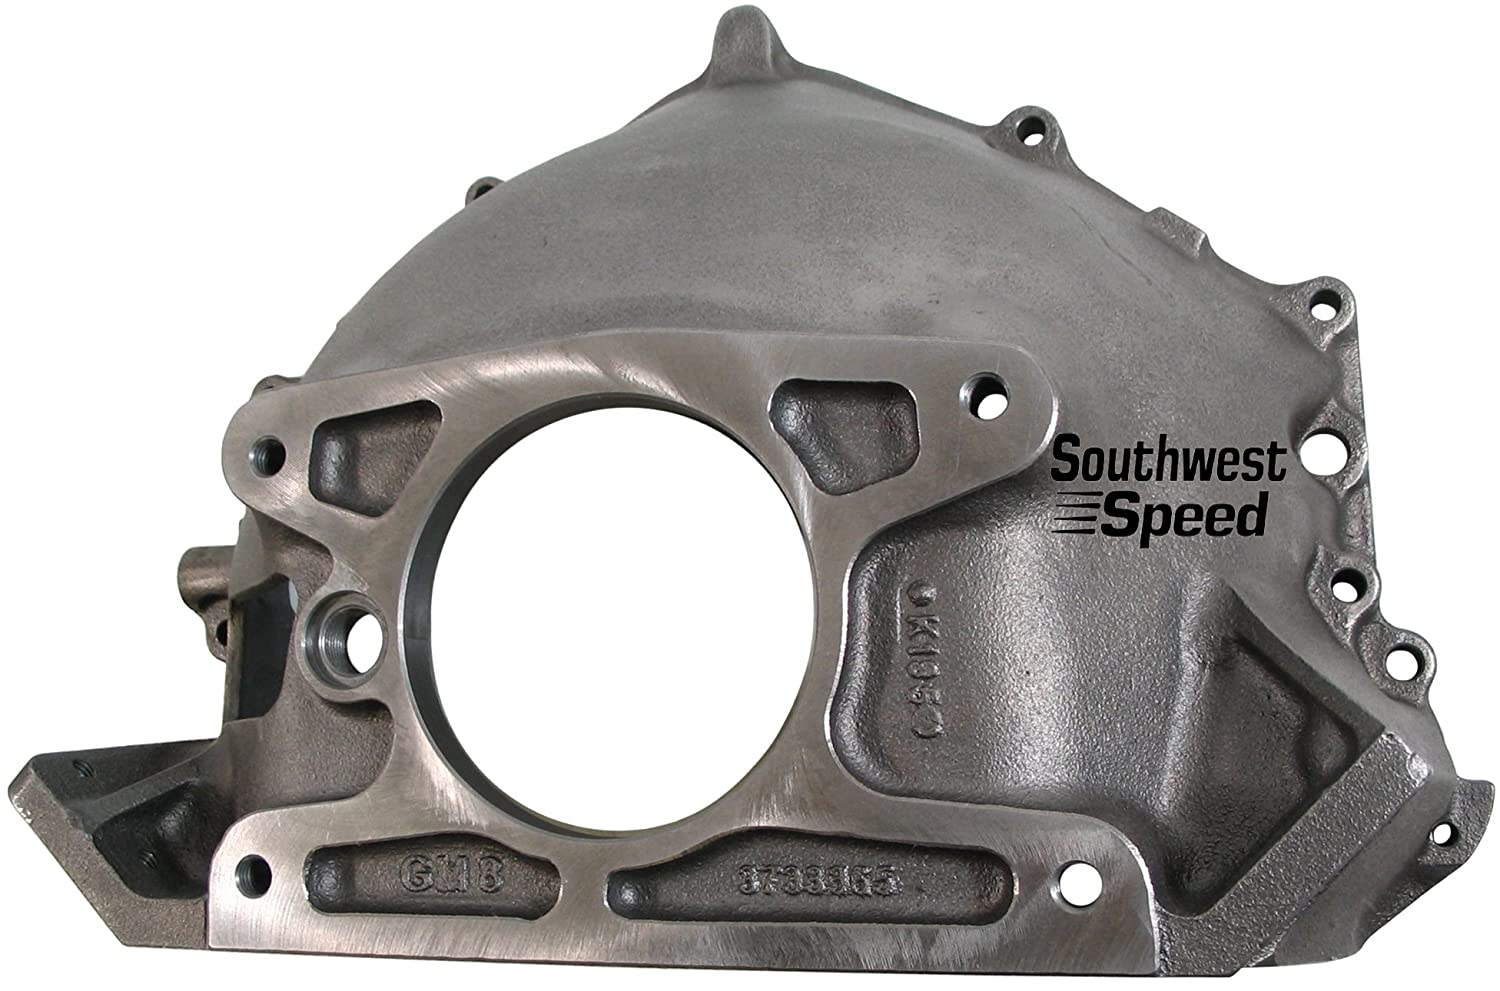 NEW 55-57 CHEVY 365 BELLHOUSING, CLUTCH BALL, & REAR ENGINE MOUNTING  BRACKETS, STAMPED WITH #GM 3733365, DIRECT REPLACEMENT FOR SBC & BBC V-8  ENGINES